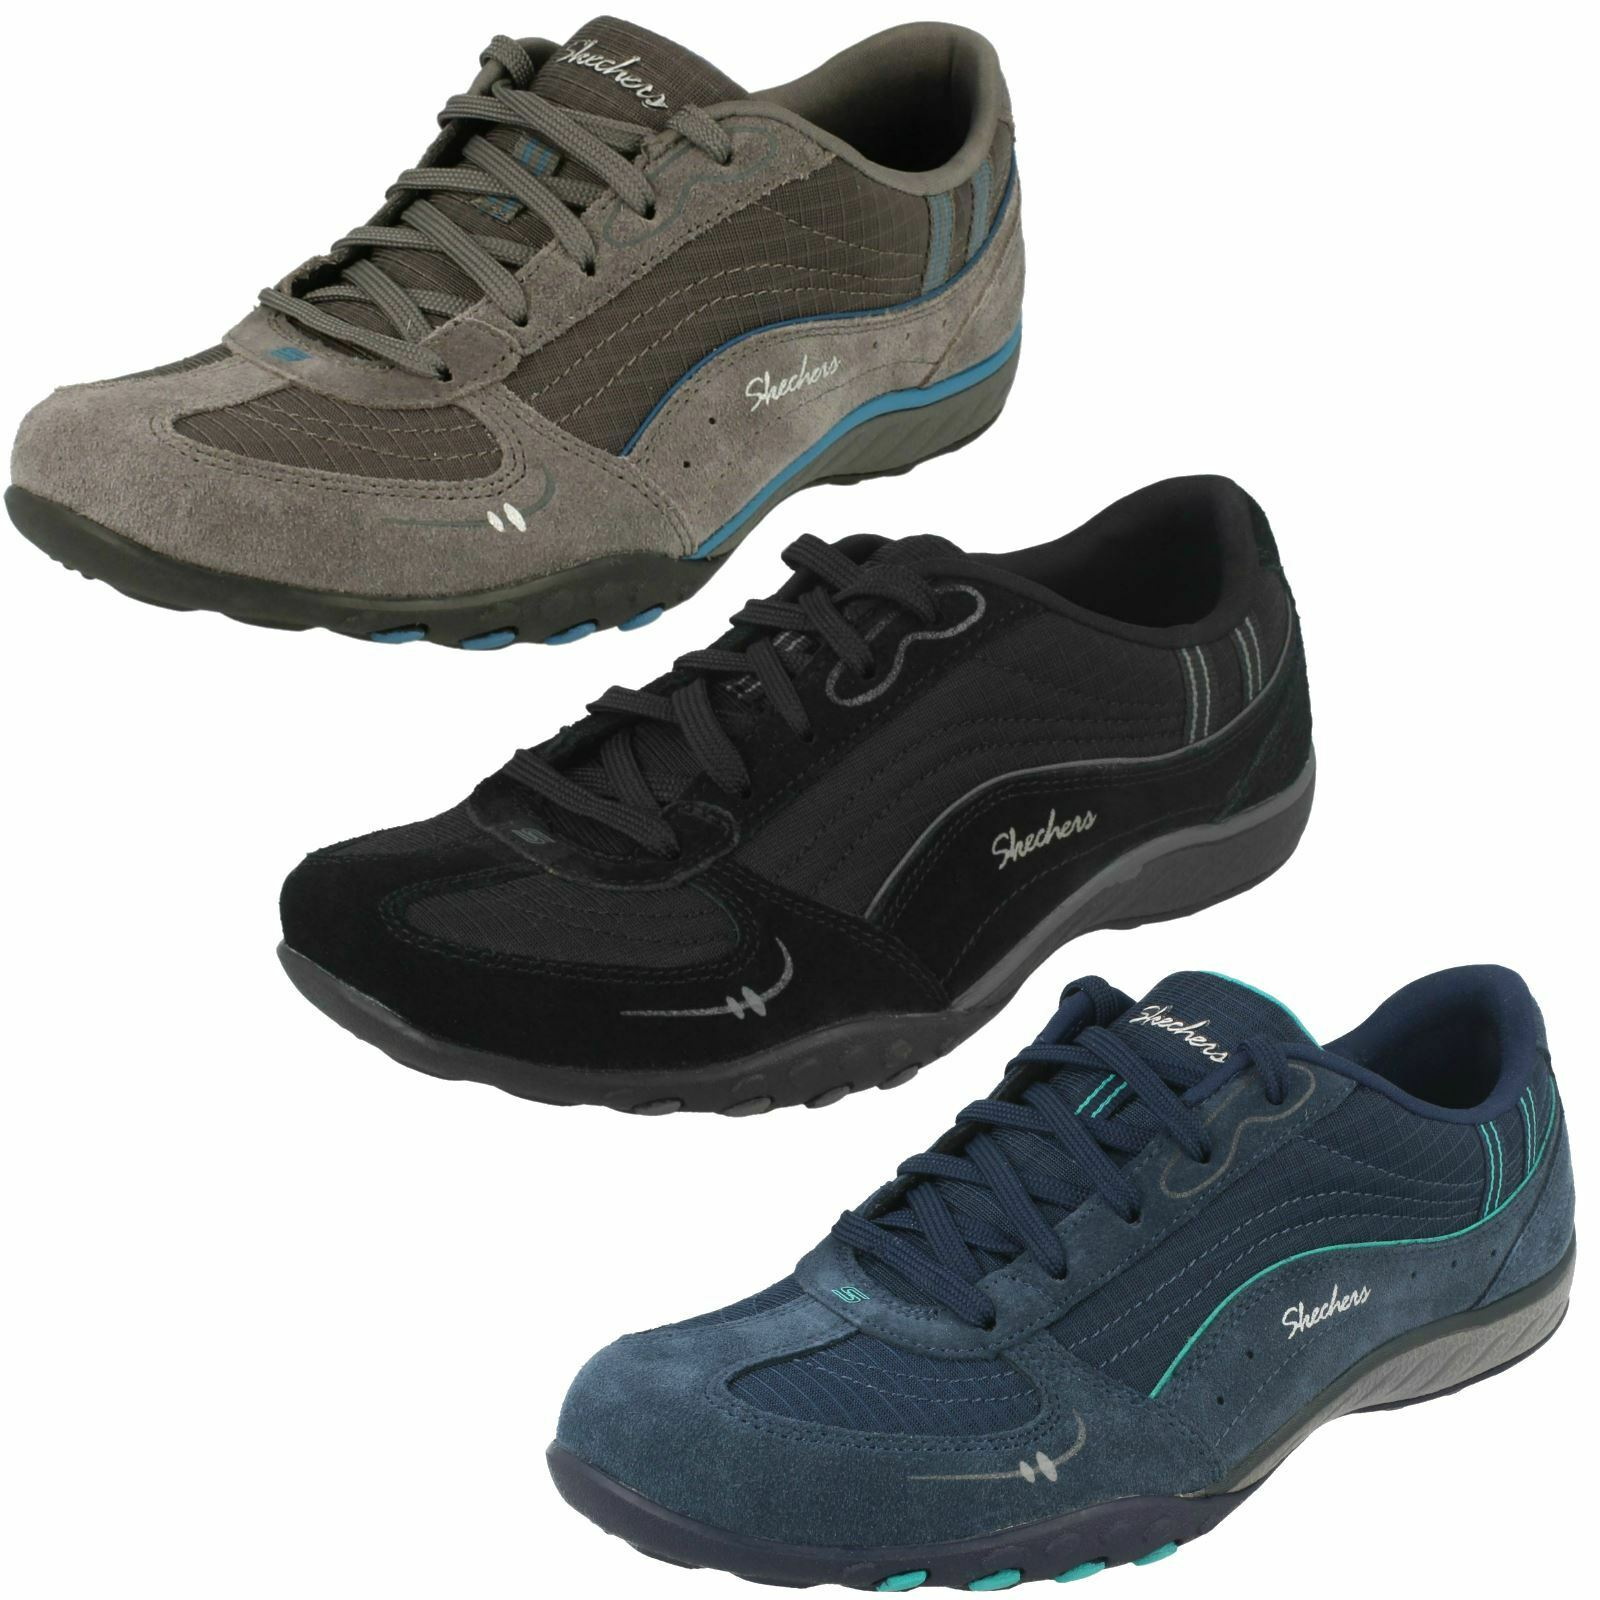 Donna Relaxed Fit Scarpe da ginnastica Skechers Breathe Easy Just Relax